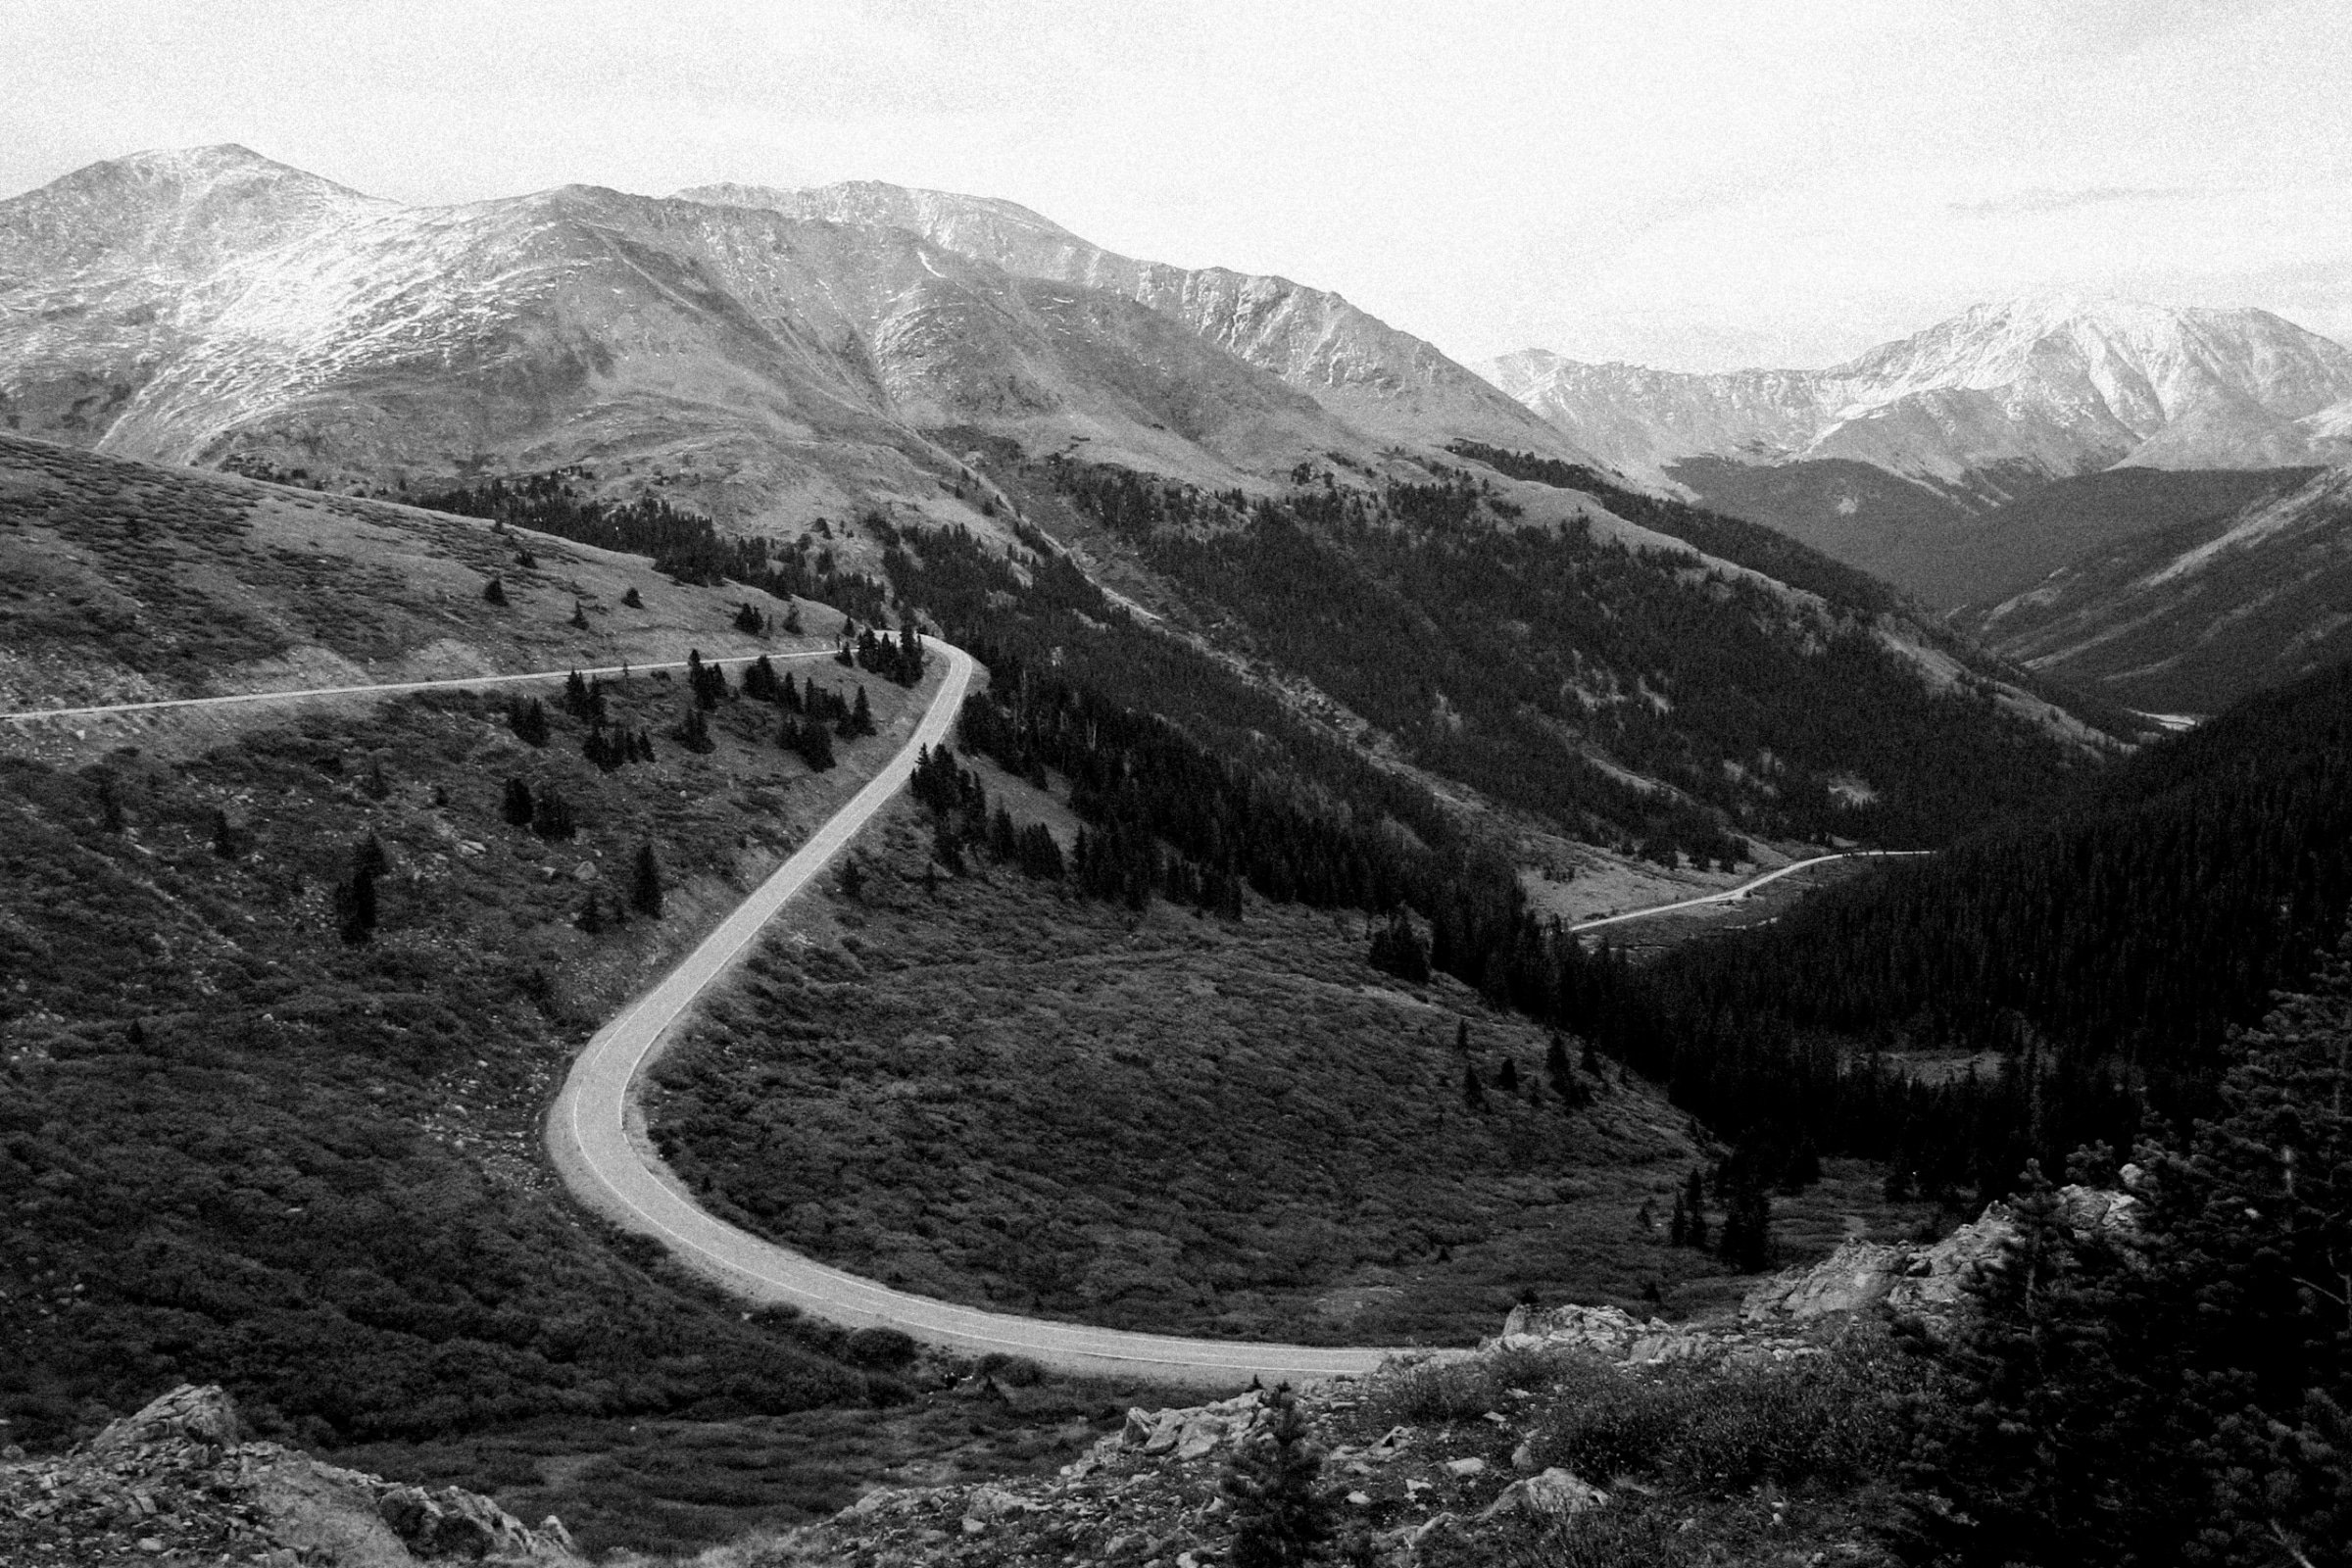 Independence-Pass-Colorado-black-and-white-fine-art-photography-by-Studio-L-photographer-Laura-Schneider-_8381